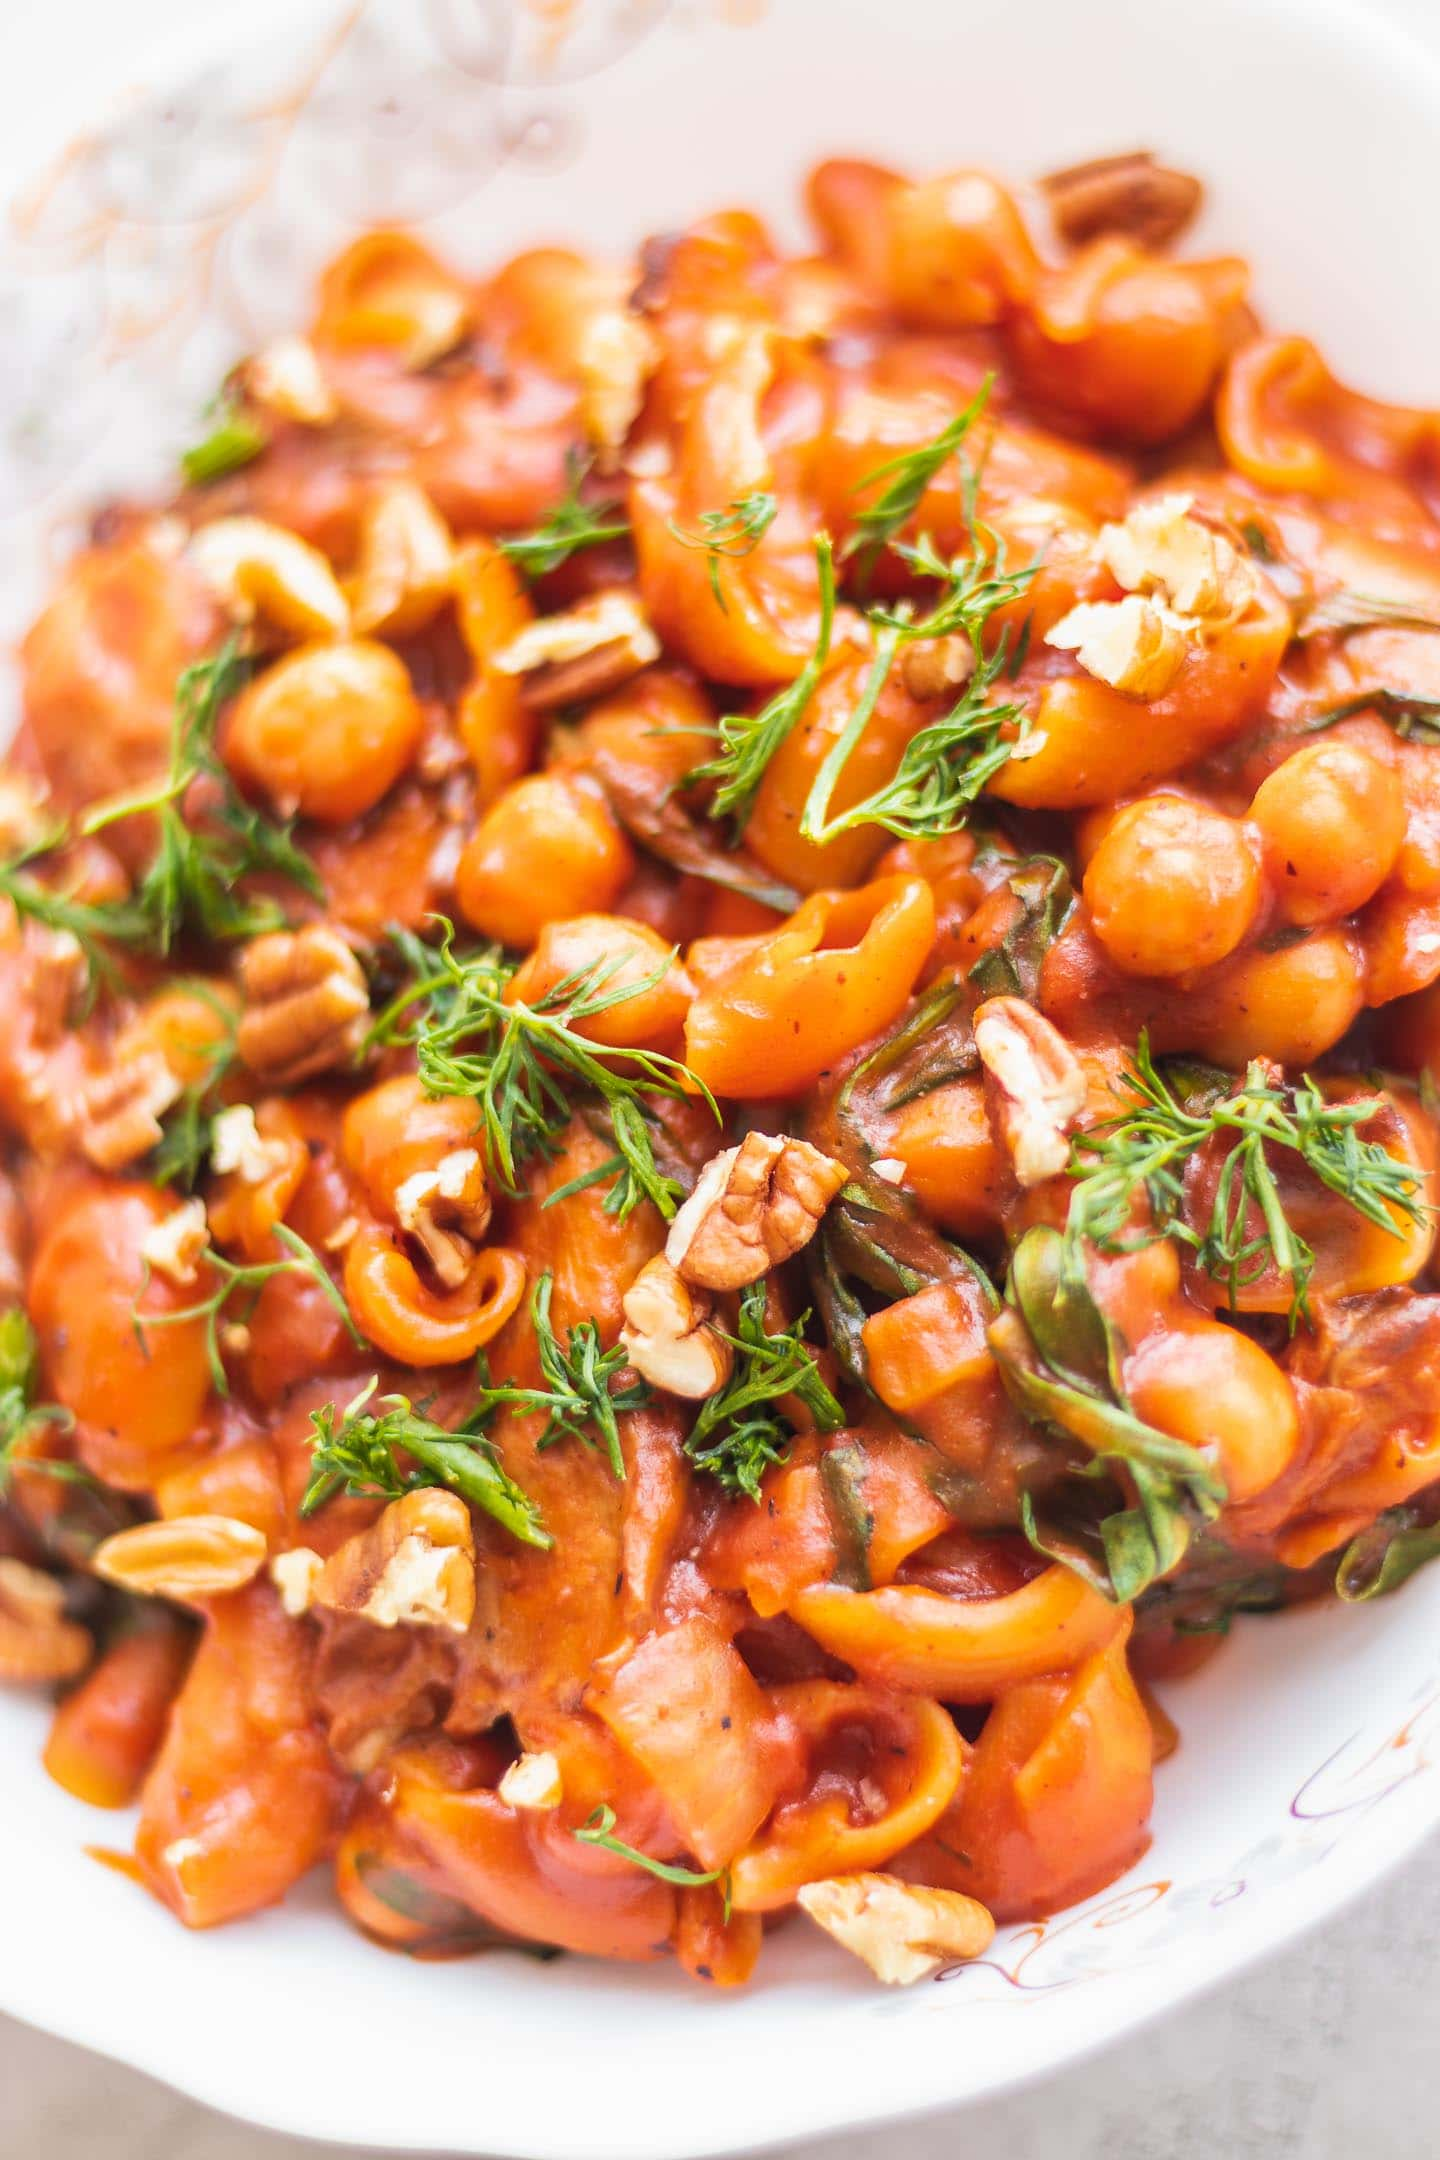 Vegan pasta with chickpeas and oyster mushrooms in a white bowl